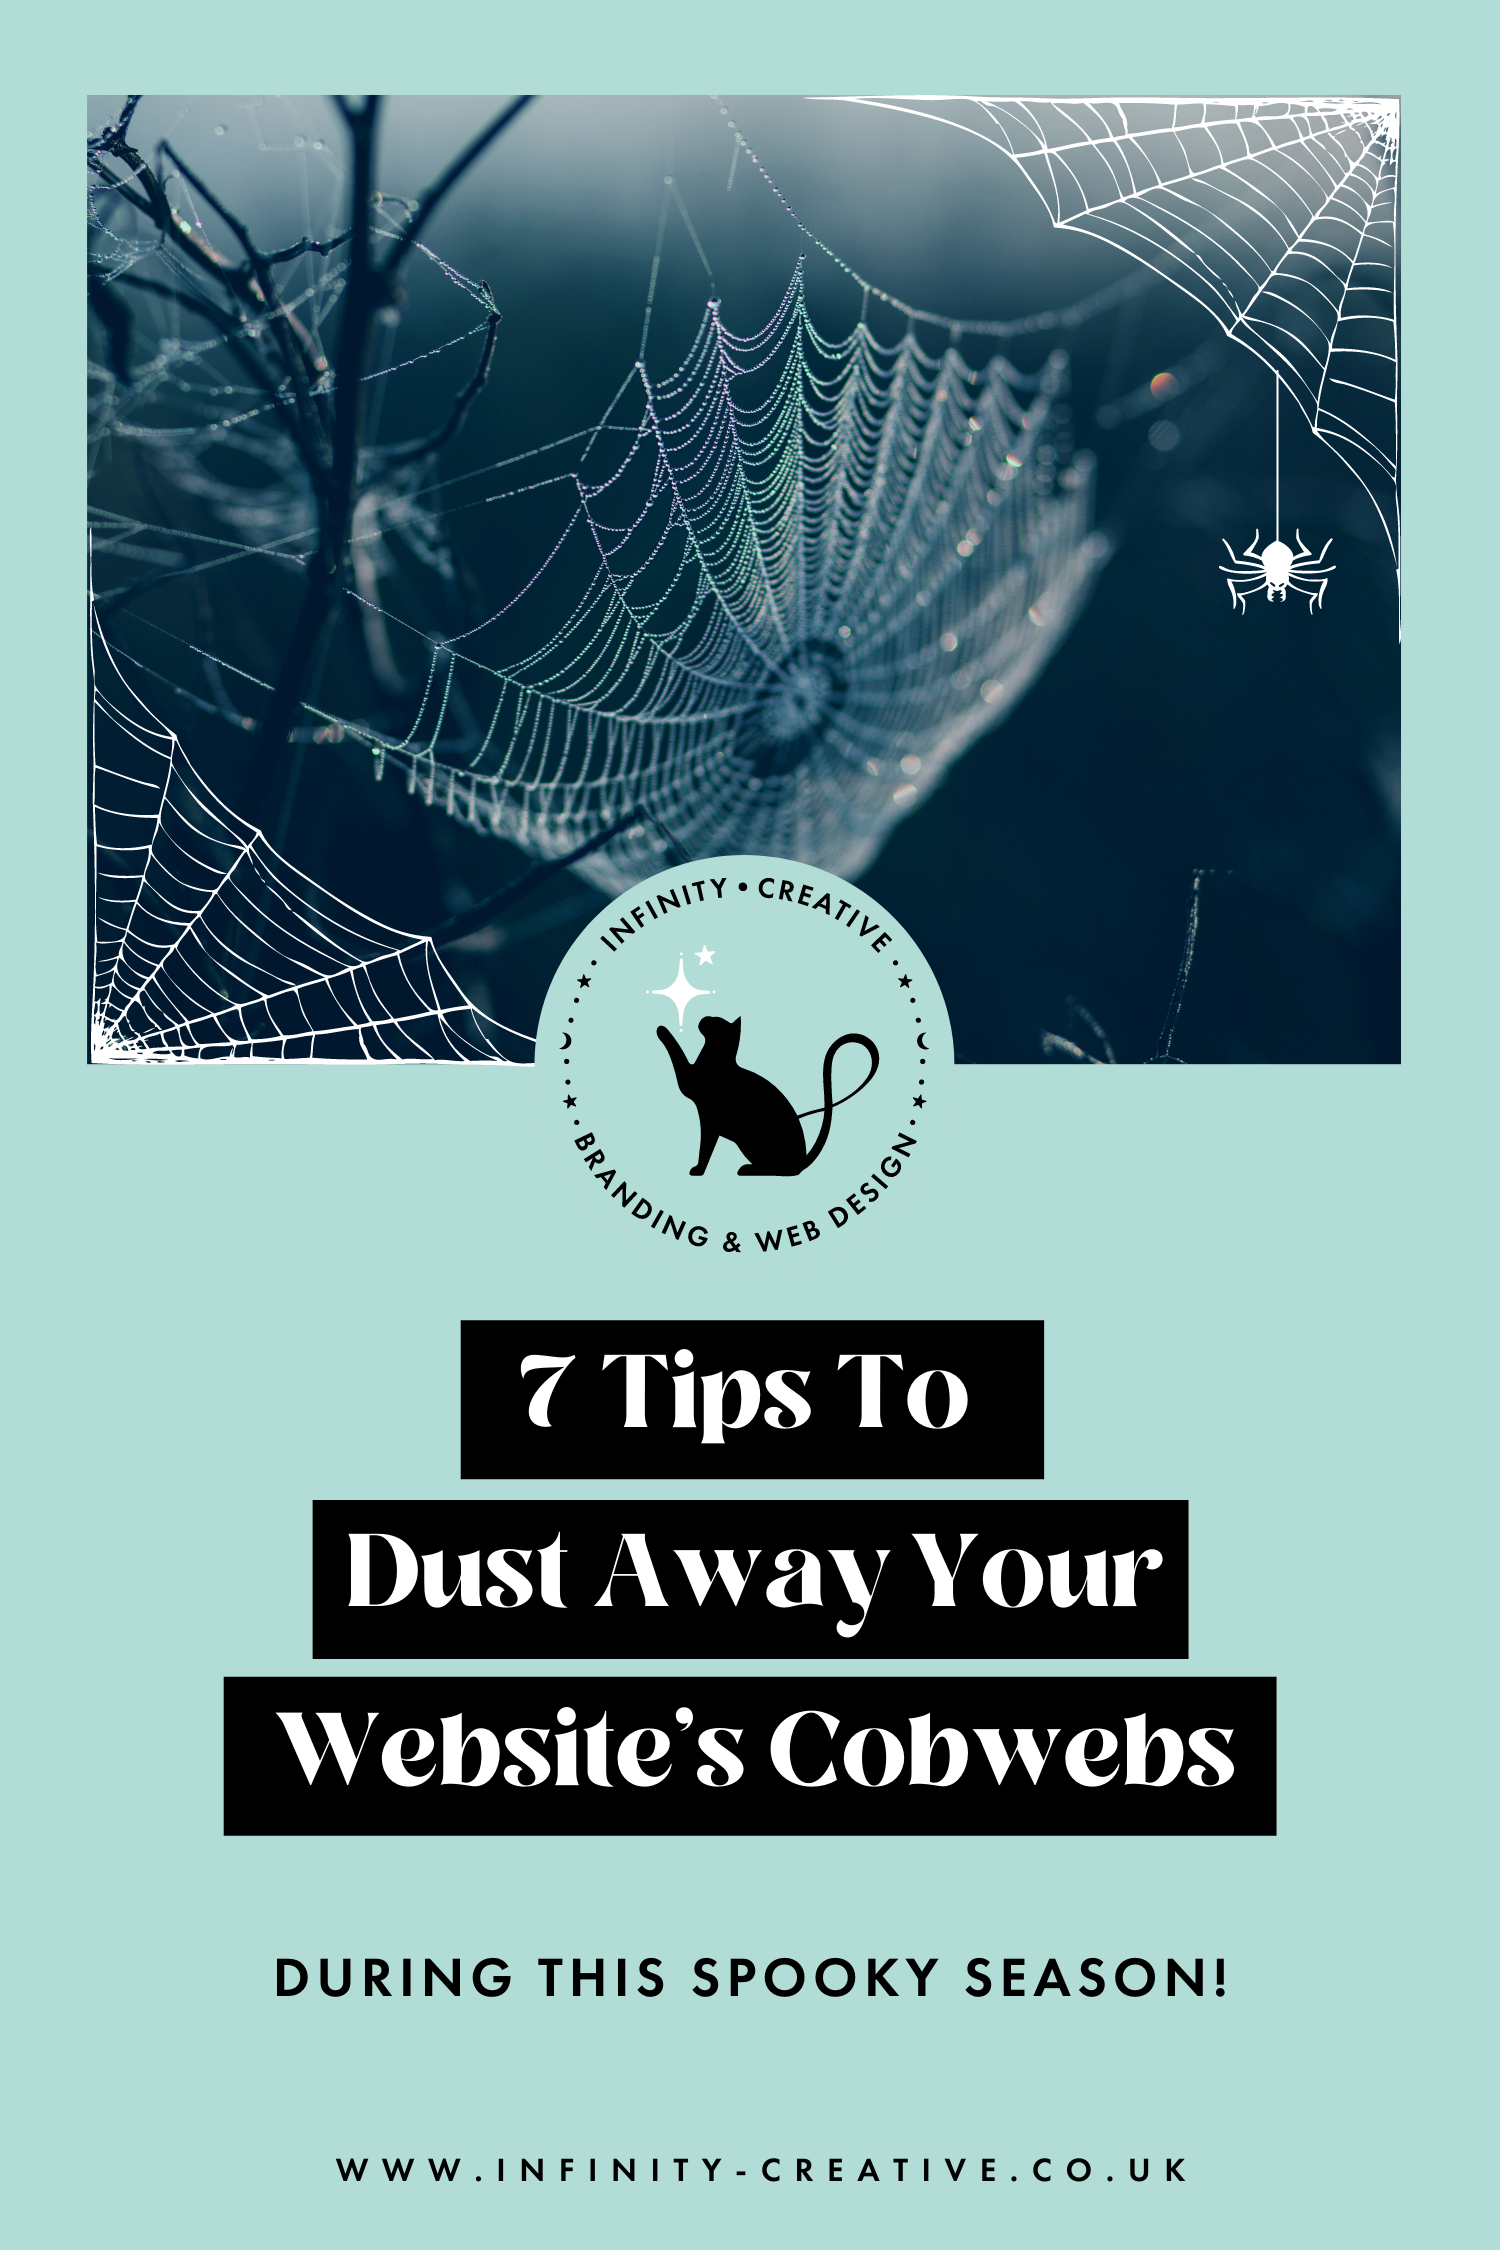 7 Tips To Dust Away Your Website's Cobwebs